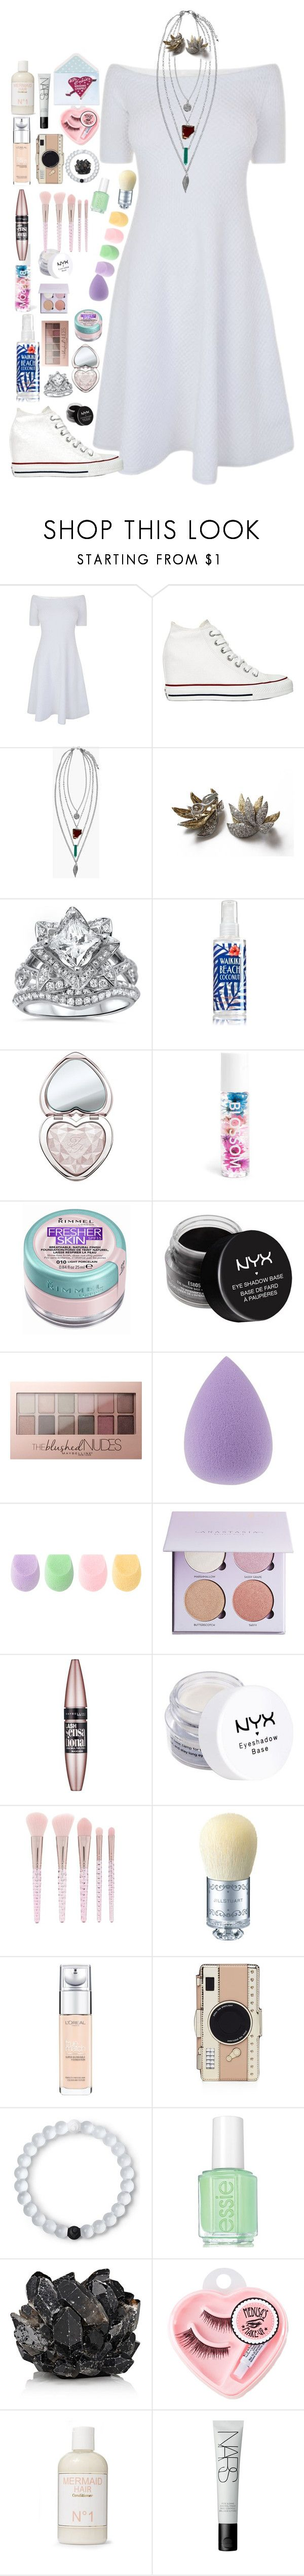 """""""Inez- Vegas Wedding"""" by shadesofcharm ❤ liked on Polyvore featuring MICHAEL Michael Kors, Converse, Boohoo, Too Faced Cosmetics, Rimmel, NYX, Maybelline, Forever 21, Morgan Lane and L'Oréal Paris"""